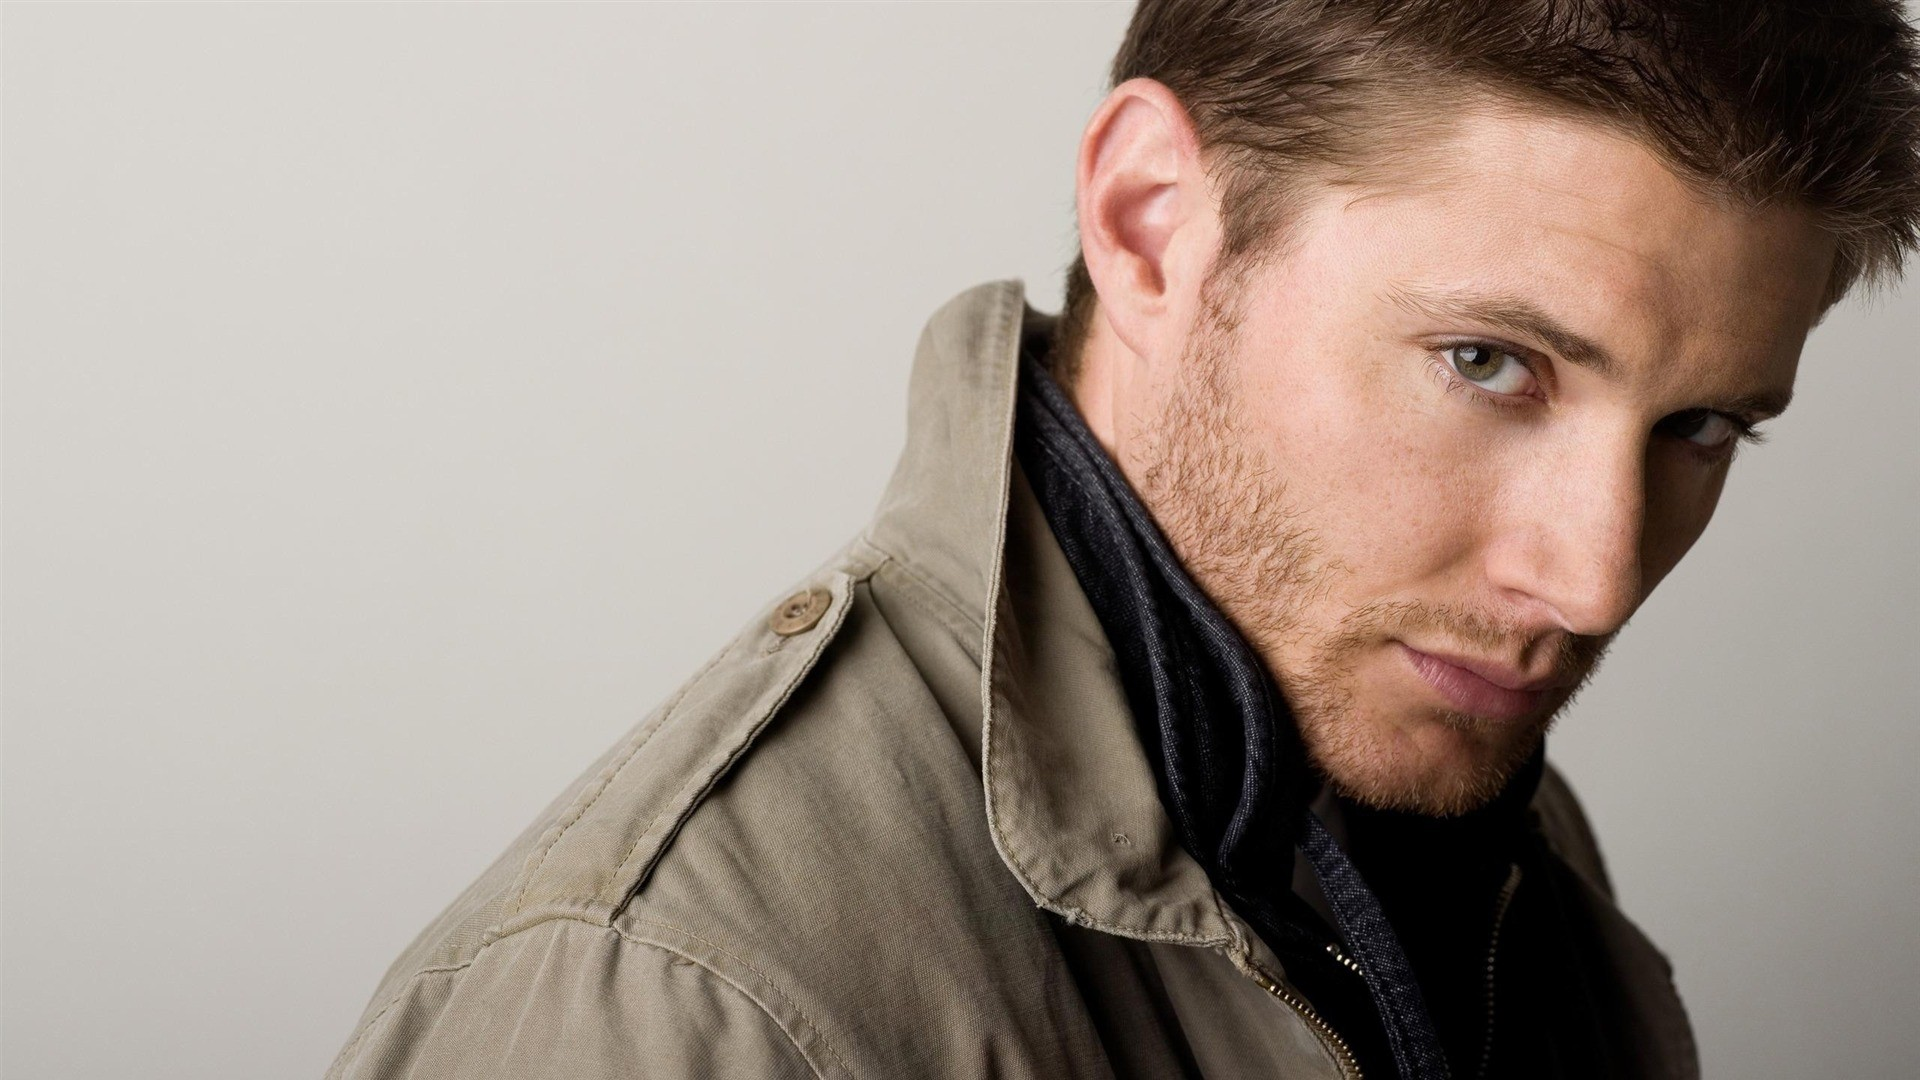 Jensen Ackles Wallpaper Desktop